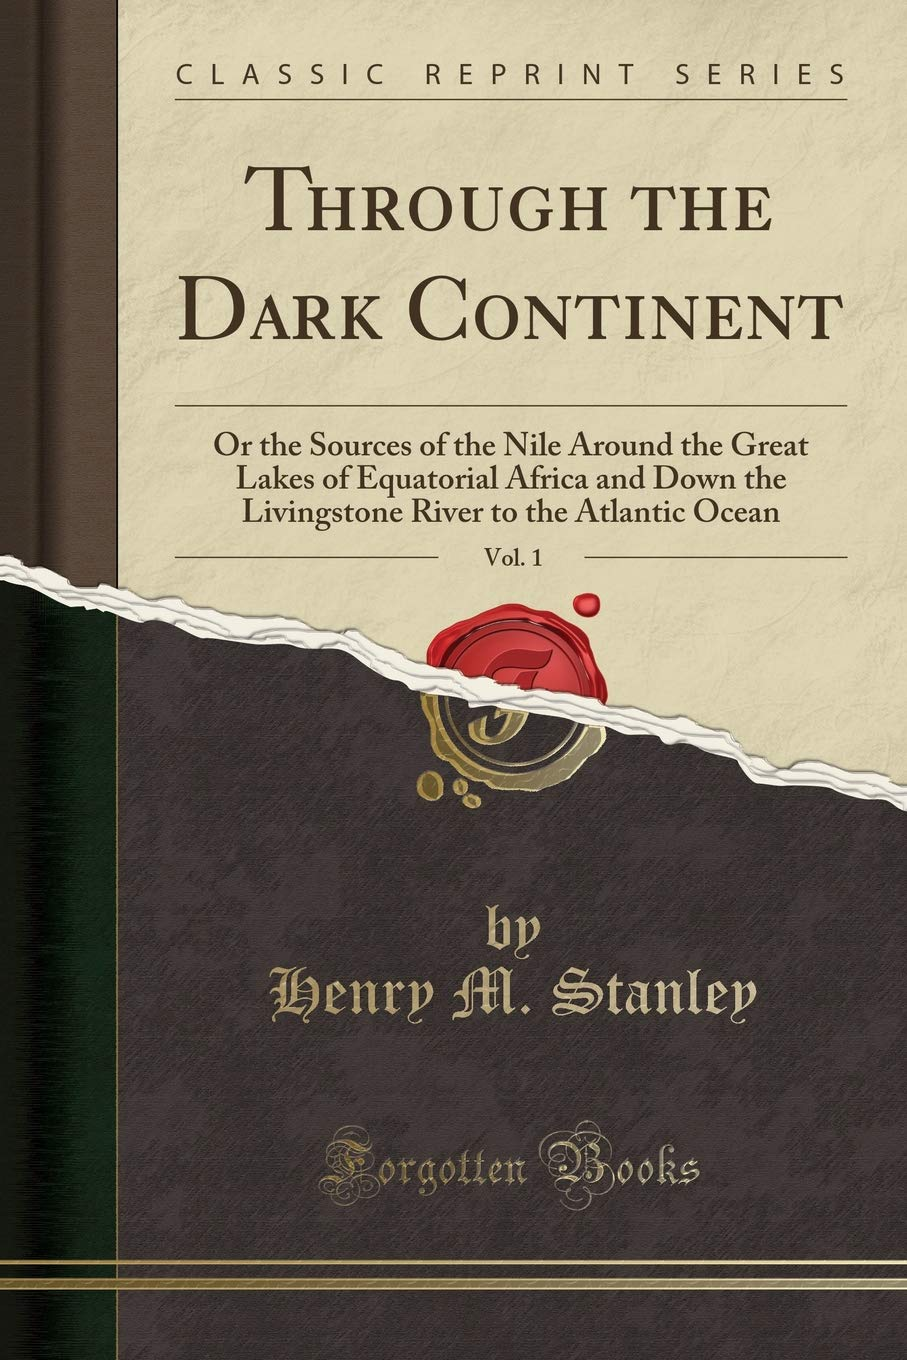 Through the Dark Continent, Vol. 1: Or the Sources of the Nile Around the Great Lakes of Equatorial Africa and Down the Livingstone River to the Atlantic Ocean (Classic Reprint) pdf epub